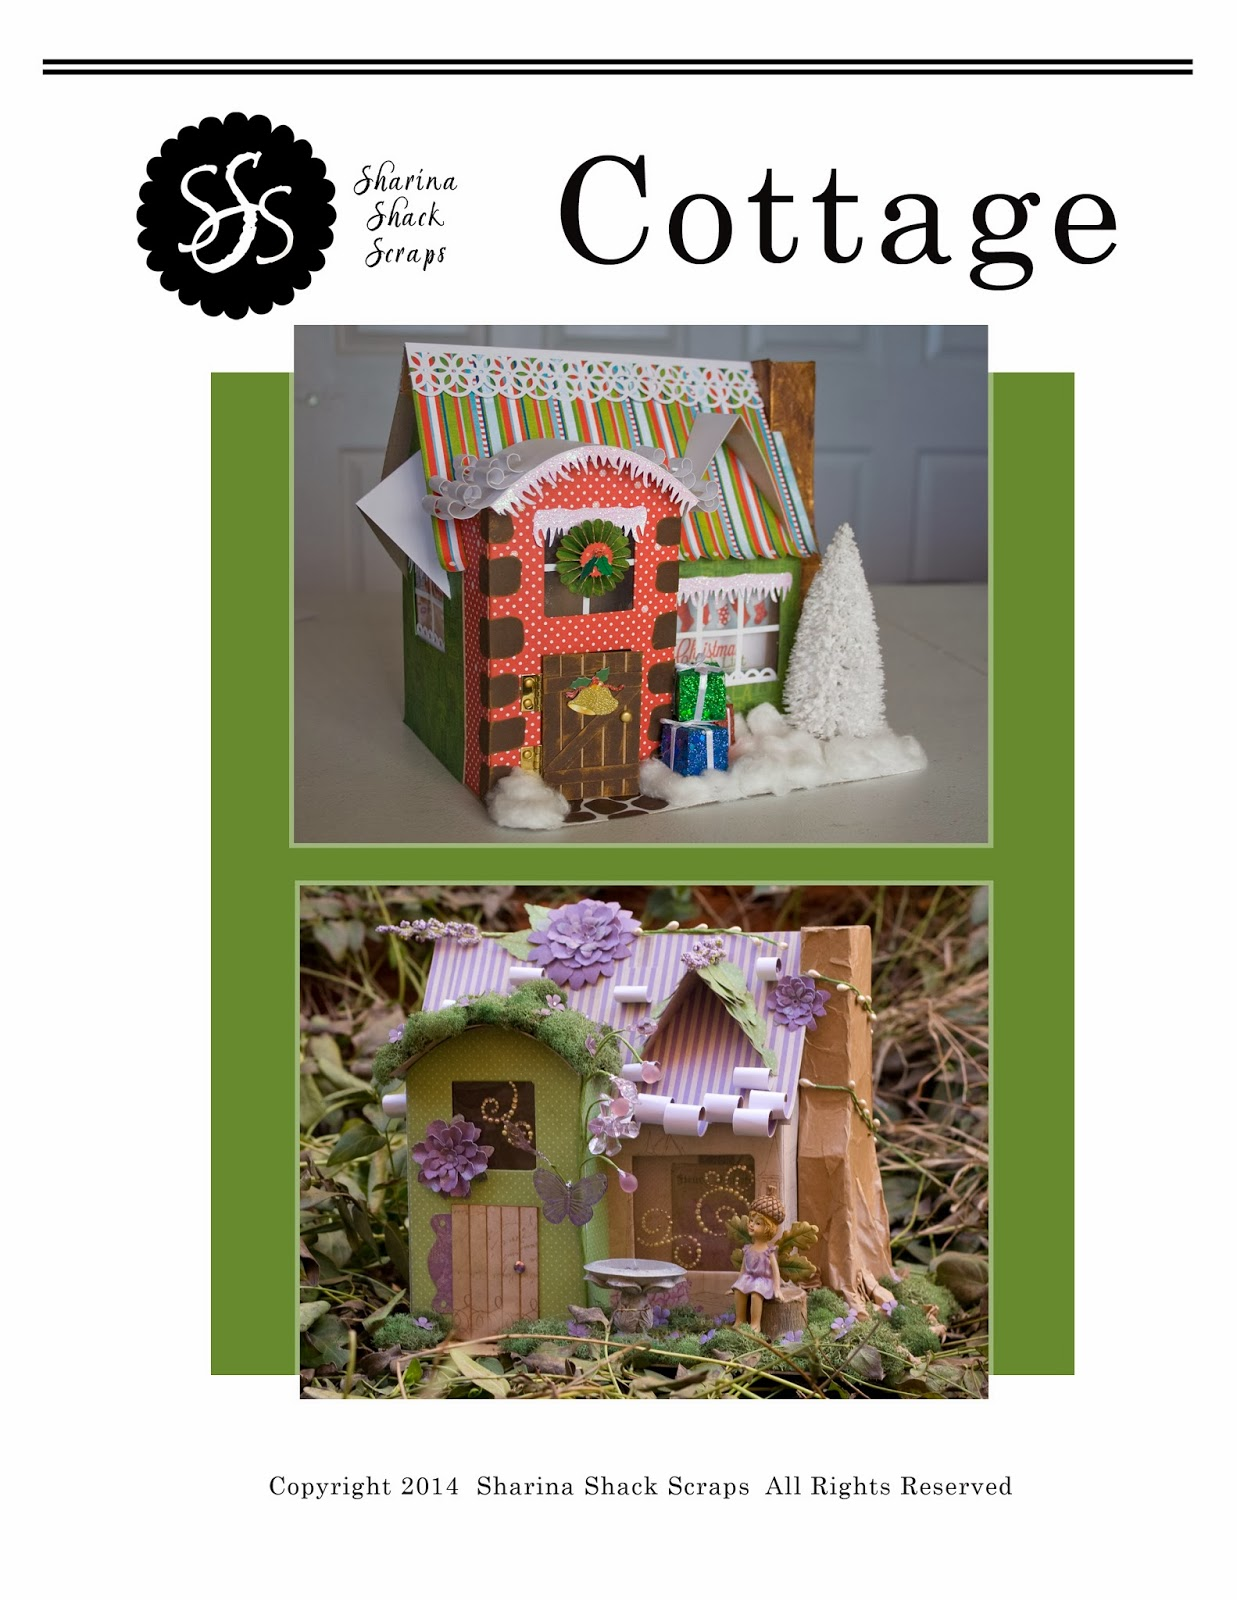 http://sharinashack.com/product/cottage-and-double-slider-mini-album/